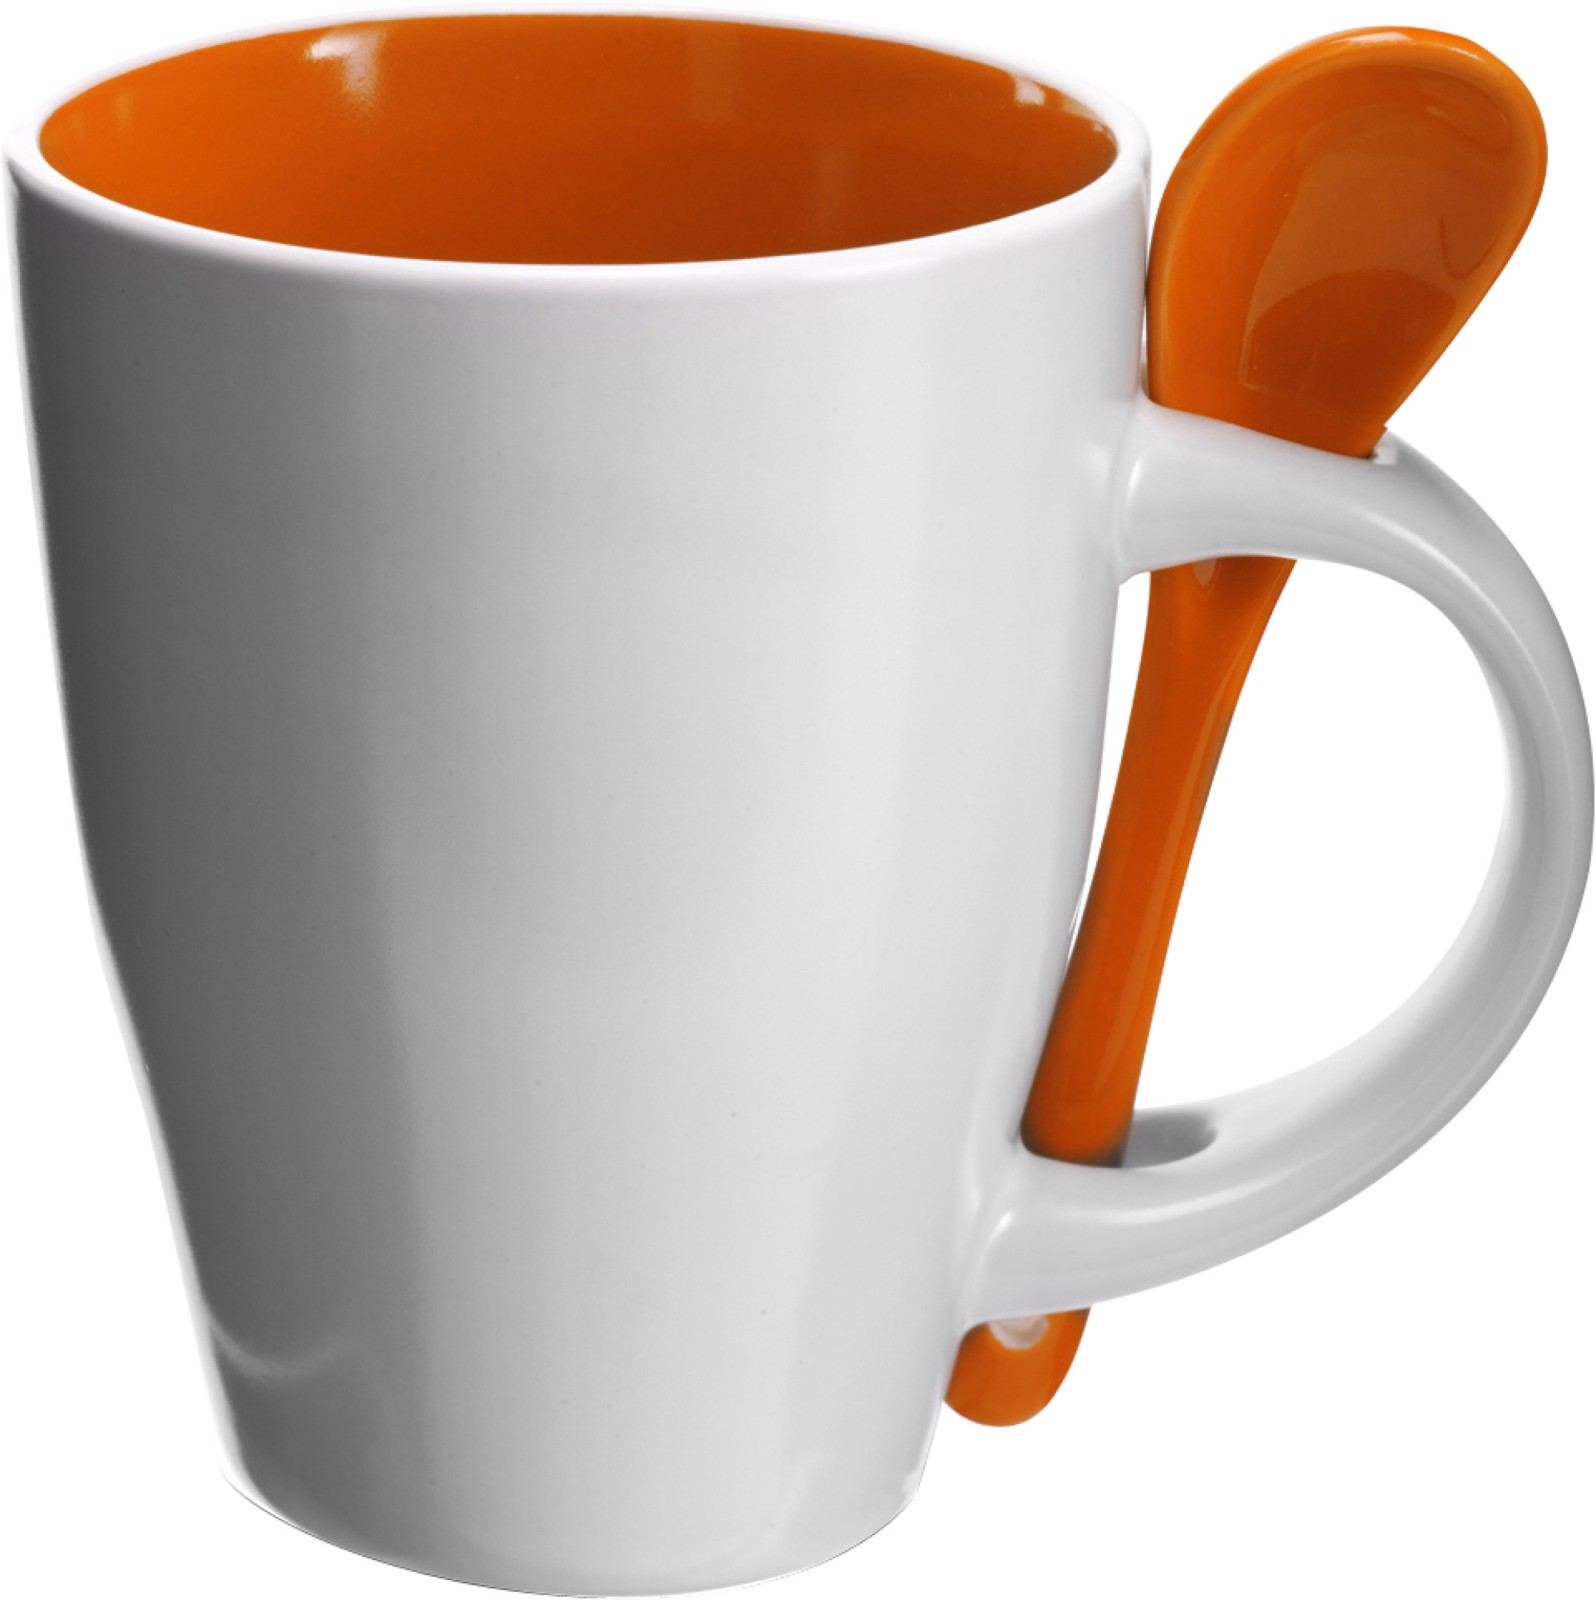 Ceramic mug with spoon - Orange